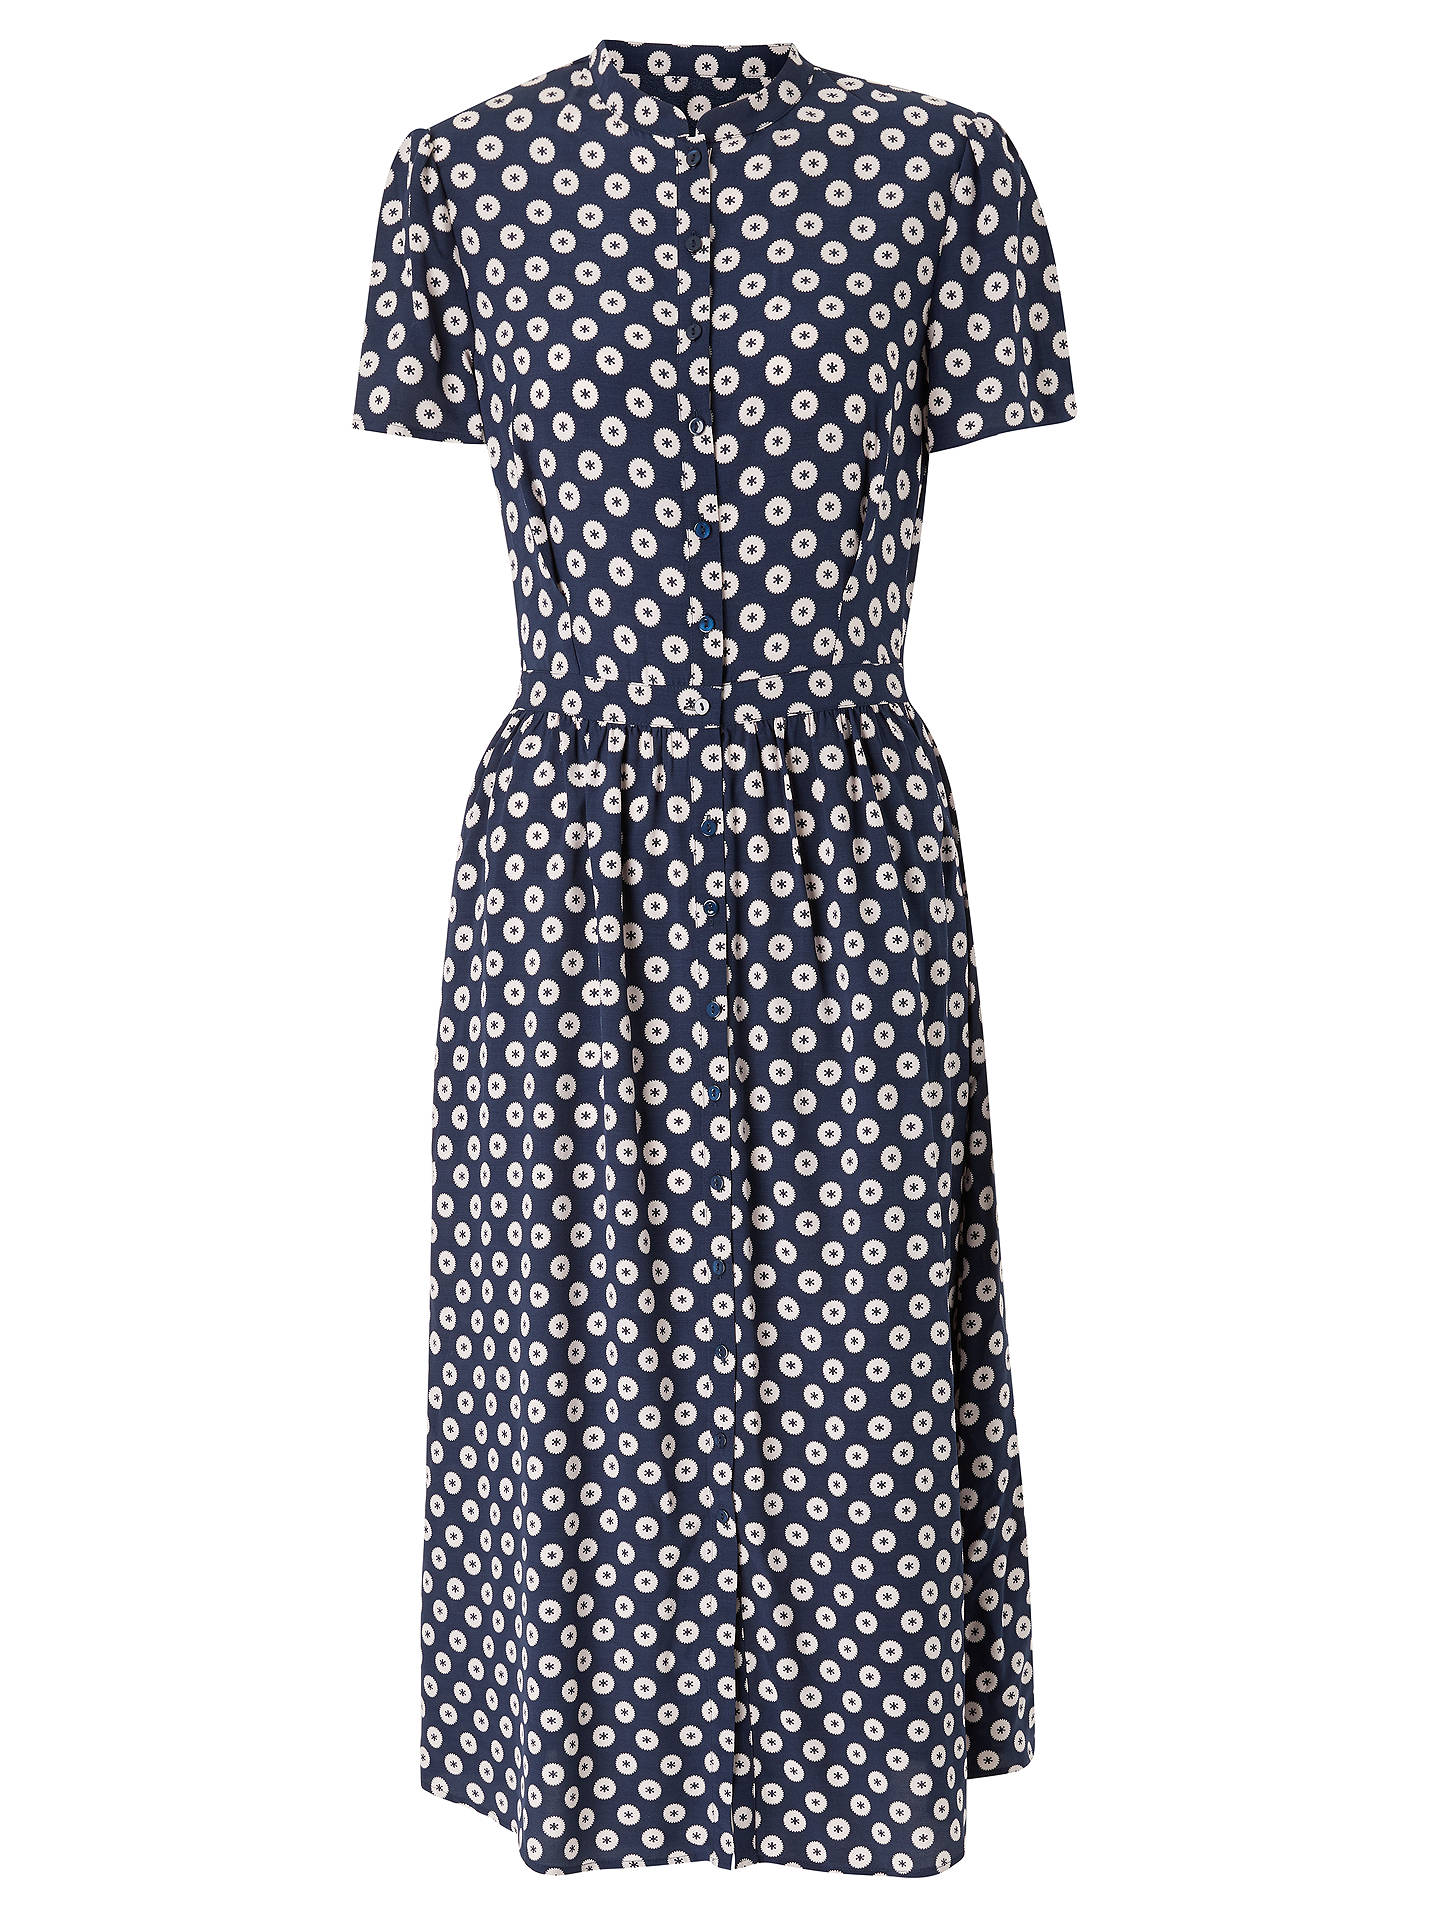 Buy Somerset by Alice Temperley Banana Spot Shirt Dress, Blue, 8 Online at johnlewis.com